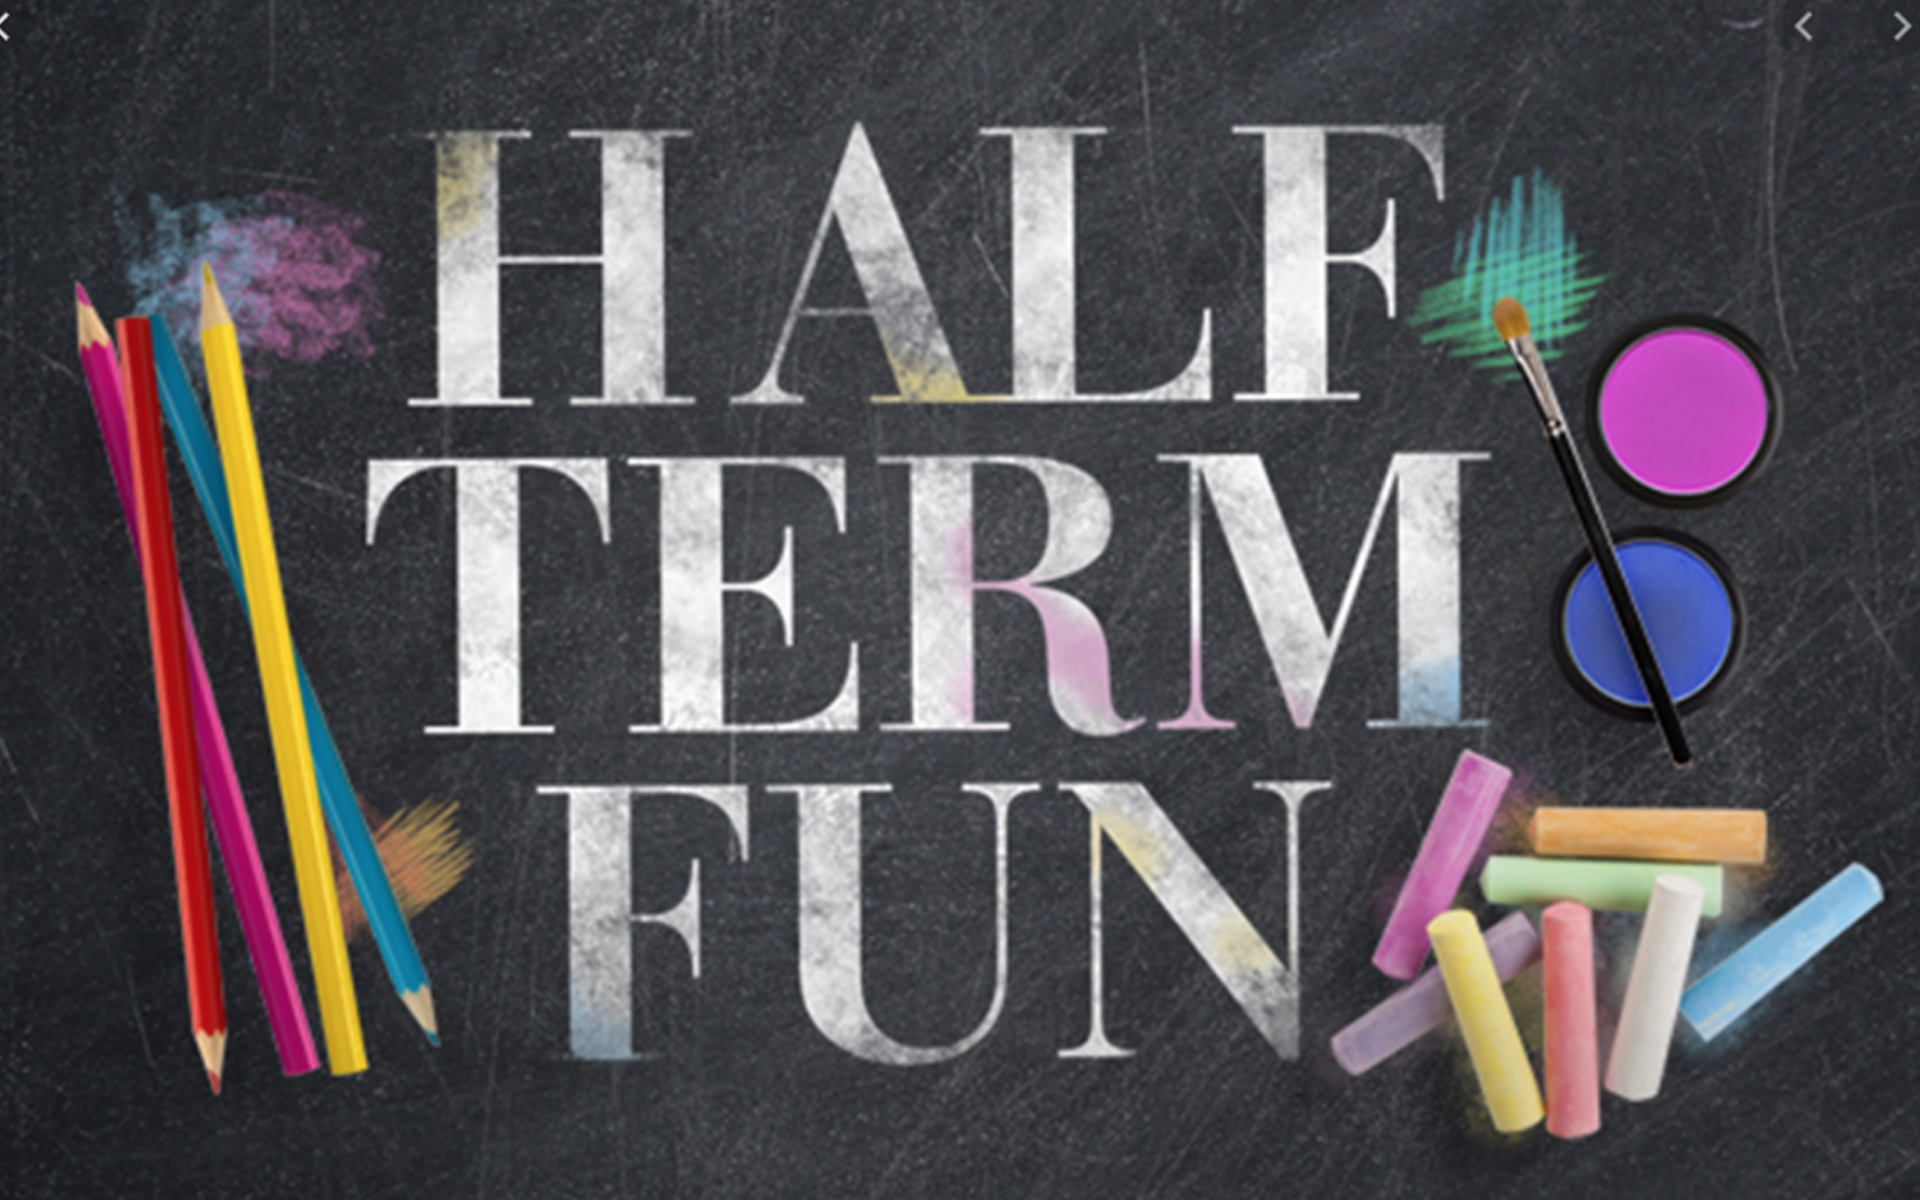 Chalkboard with Half Term Fun written on it